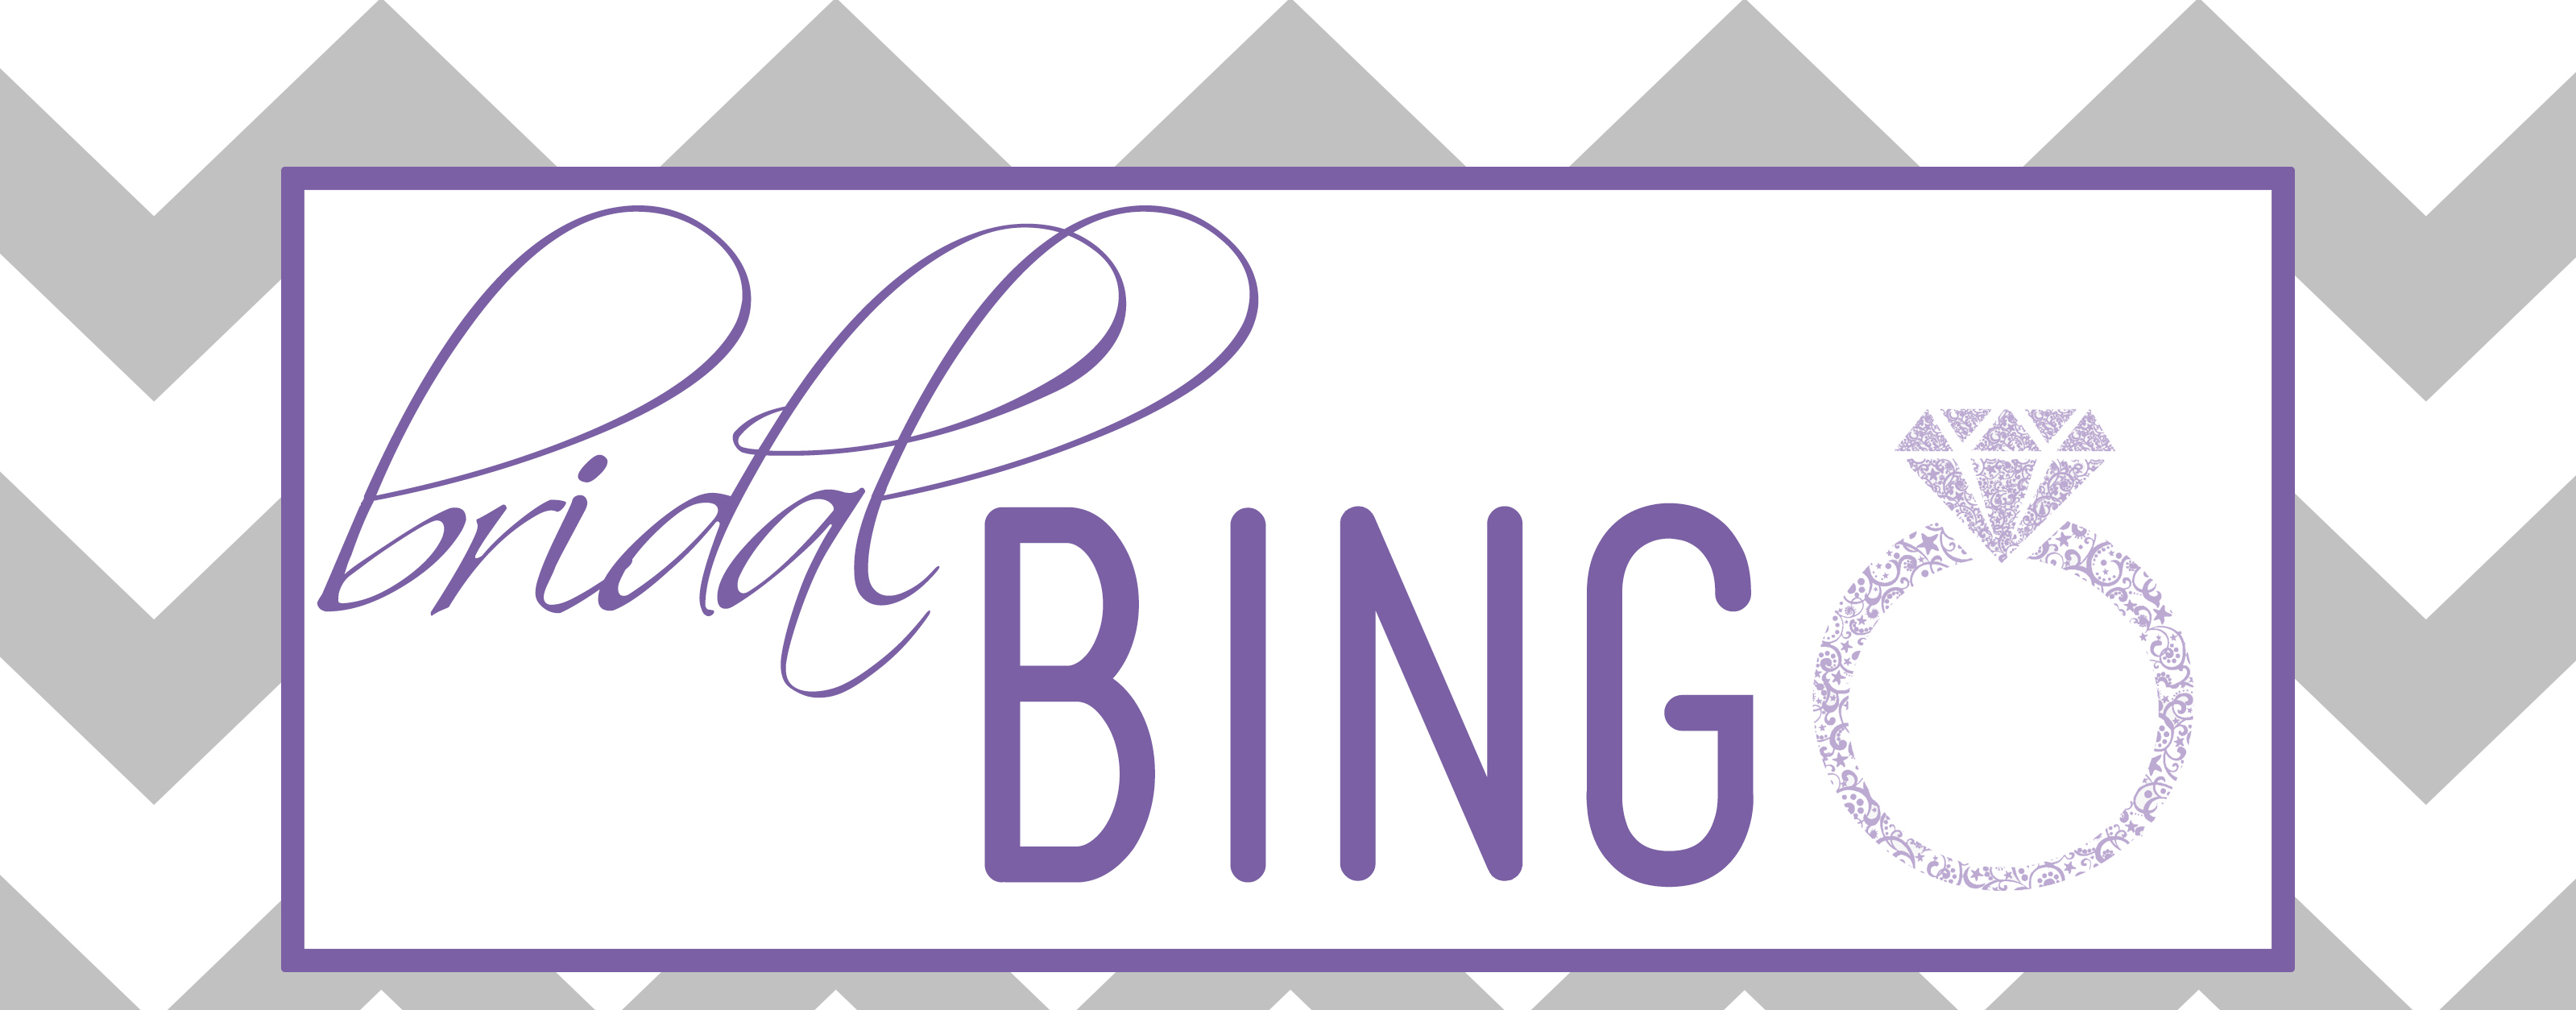 New Bridal Bingo (Purple)